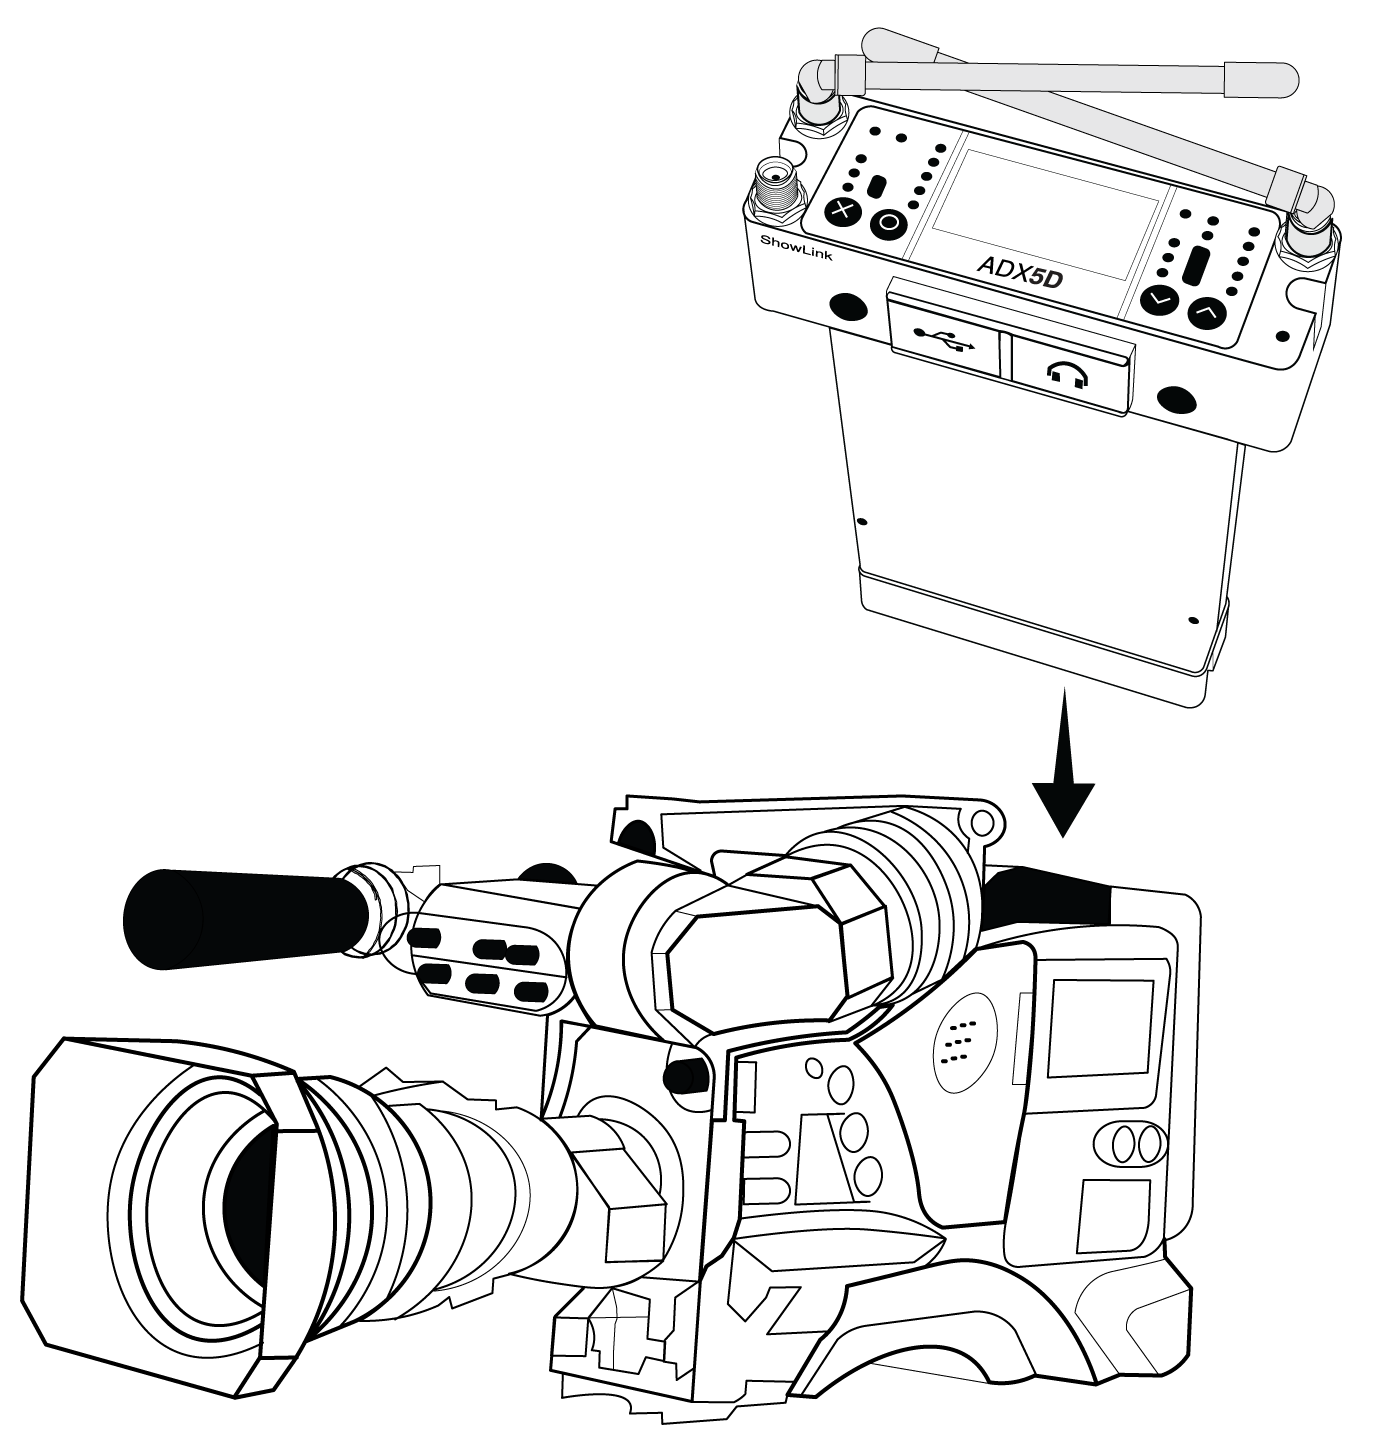 ADX5D being inserted into a DB25-compatible video camera